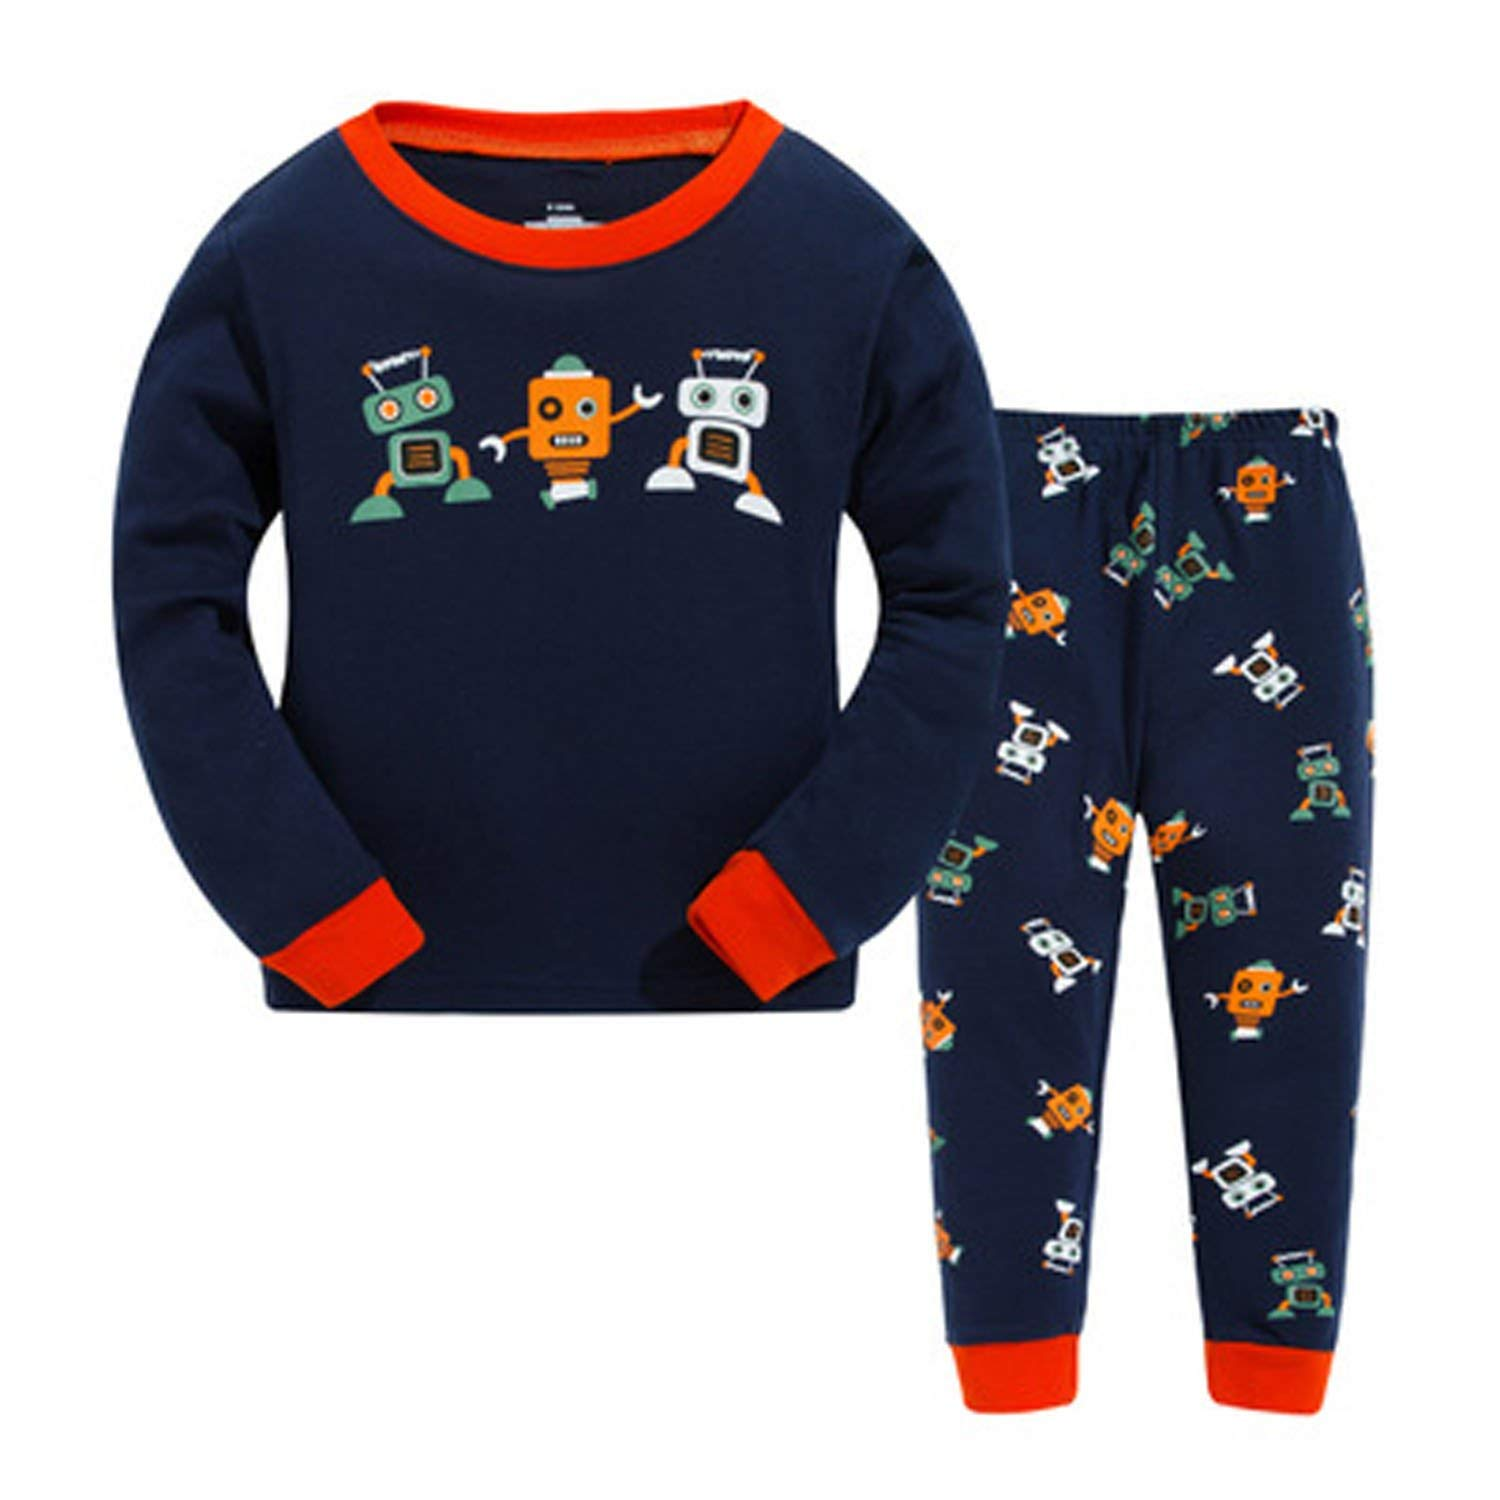 Tinaflower Robot Little Boys' 2 Piece Long Sleeve Pajama Sets 100% Cotton Sleepwear Toddler Kids Clothes